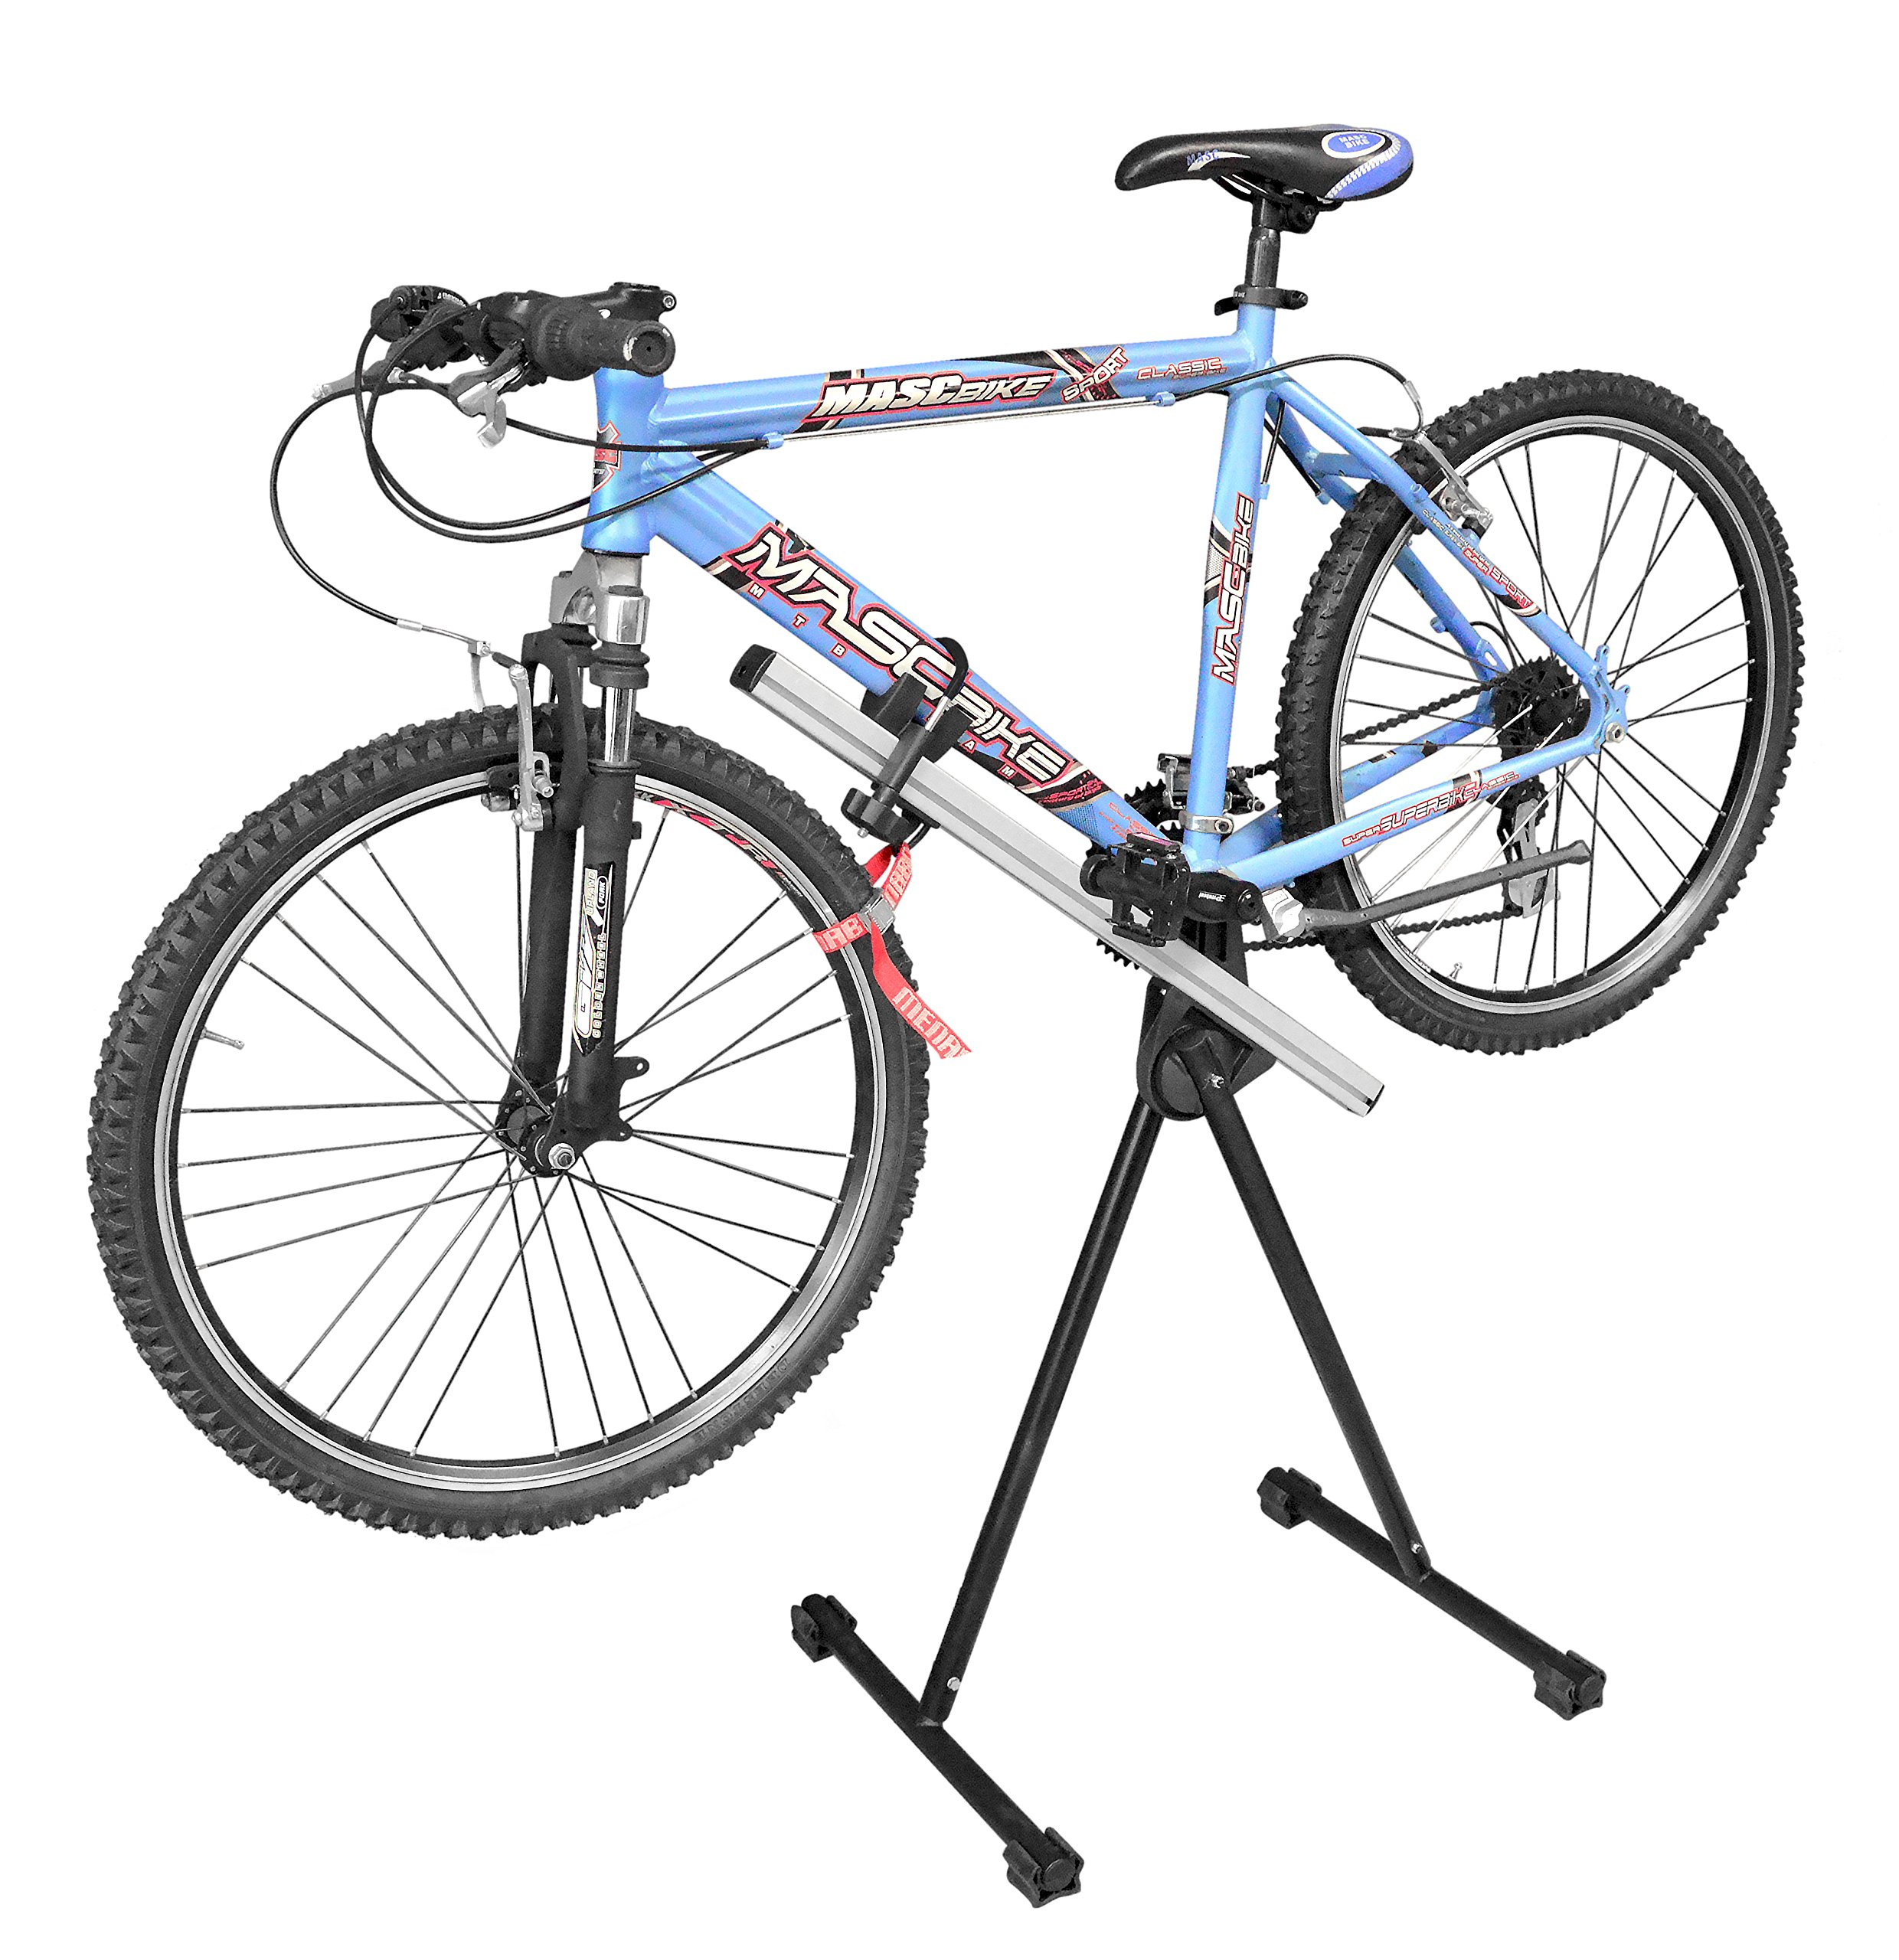 Menabo Bicycle Cleaning Workstand and Repair Stand - Foldable, Adjustable, Adapts to Standard and Mountain Bikes - Sturdy - Made in Italy to Strict European Standards